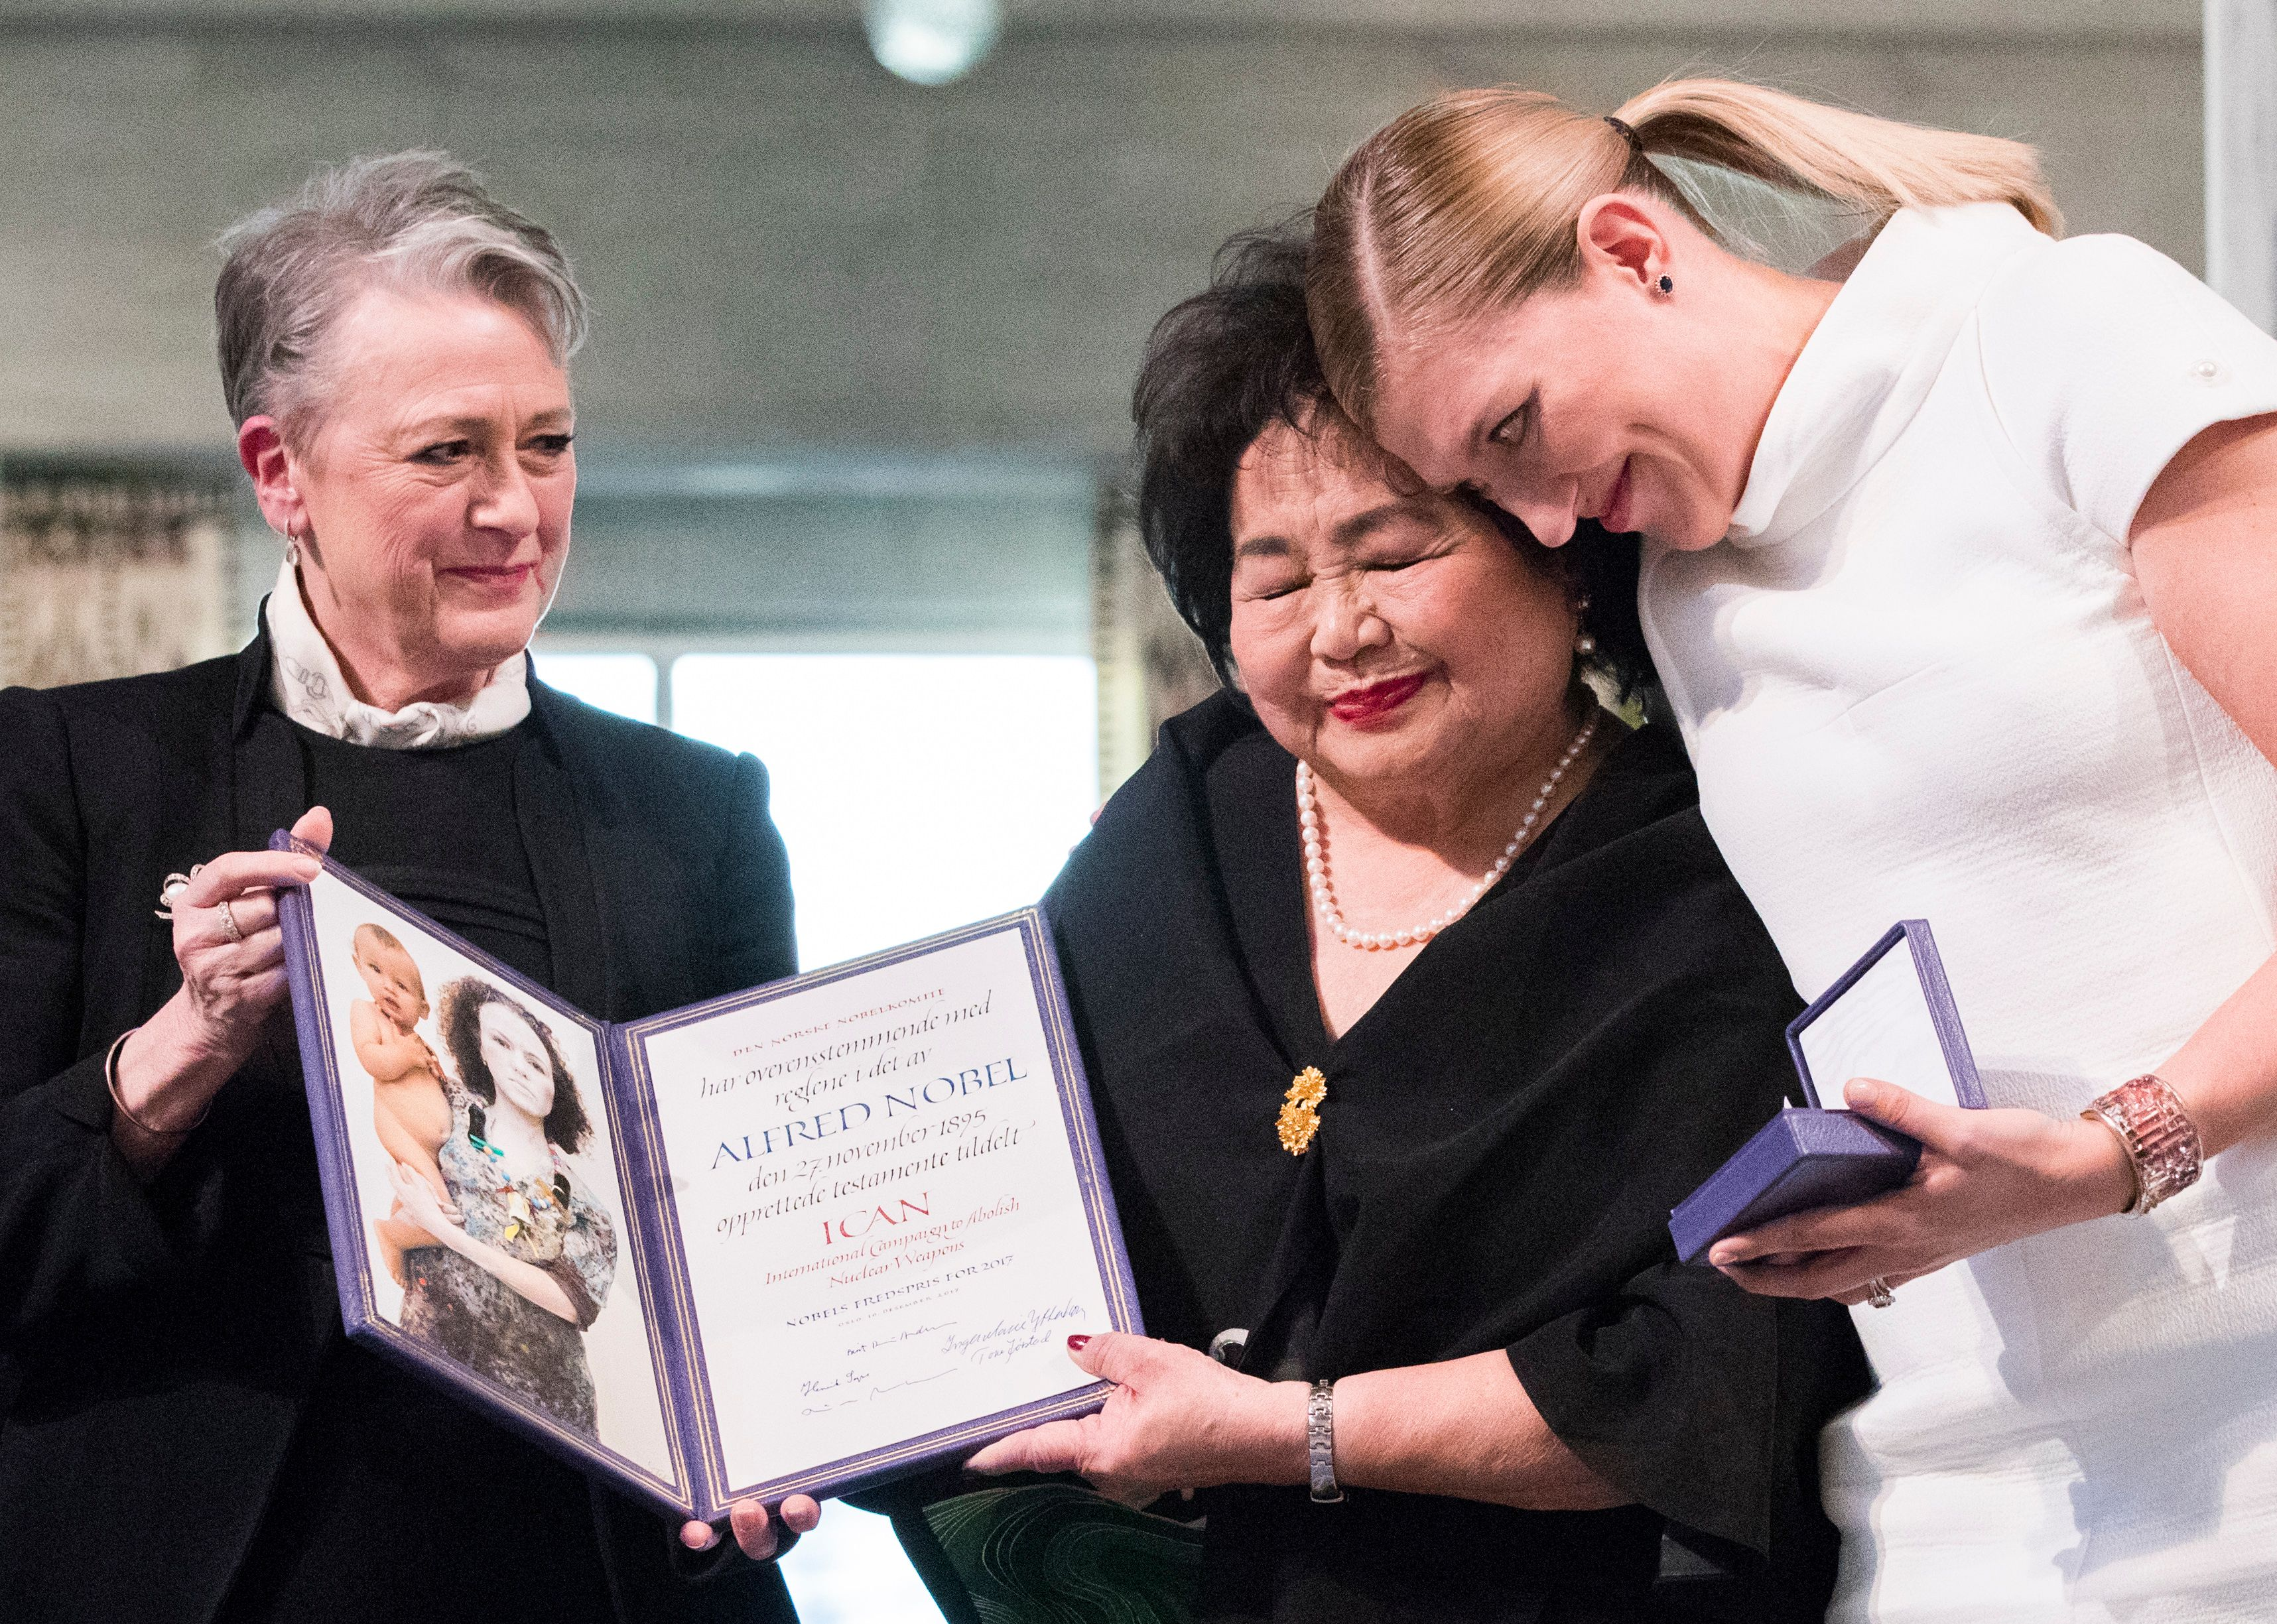 Beatrice Fihn, pictured right, leader of the International Campaign to Abolish Nuclear Weapons, and Hiroshima nuclear bombing survivor Setsuko Thurlow, pictured center, during the award ceremony for the 2017 Nobel Peace Prize on December 10, 2017.